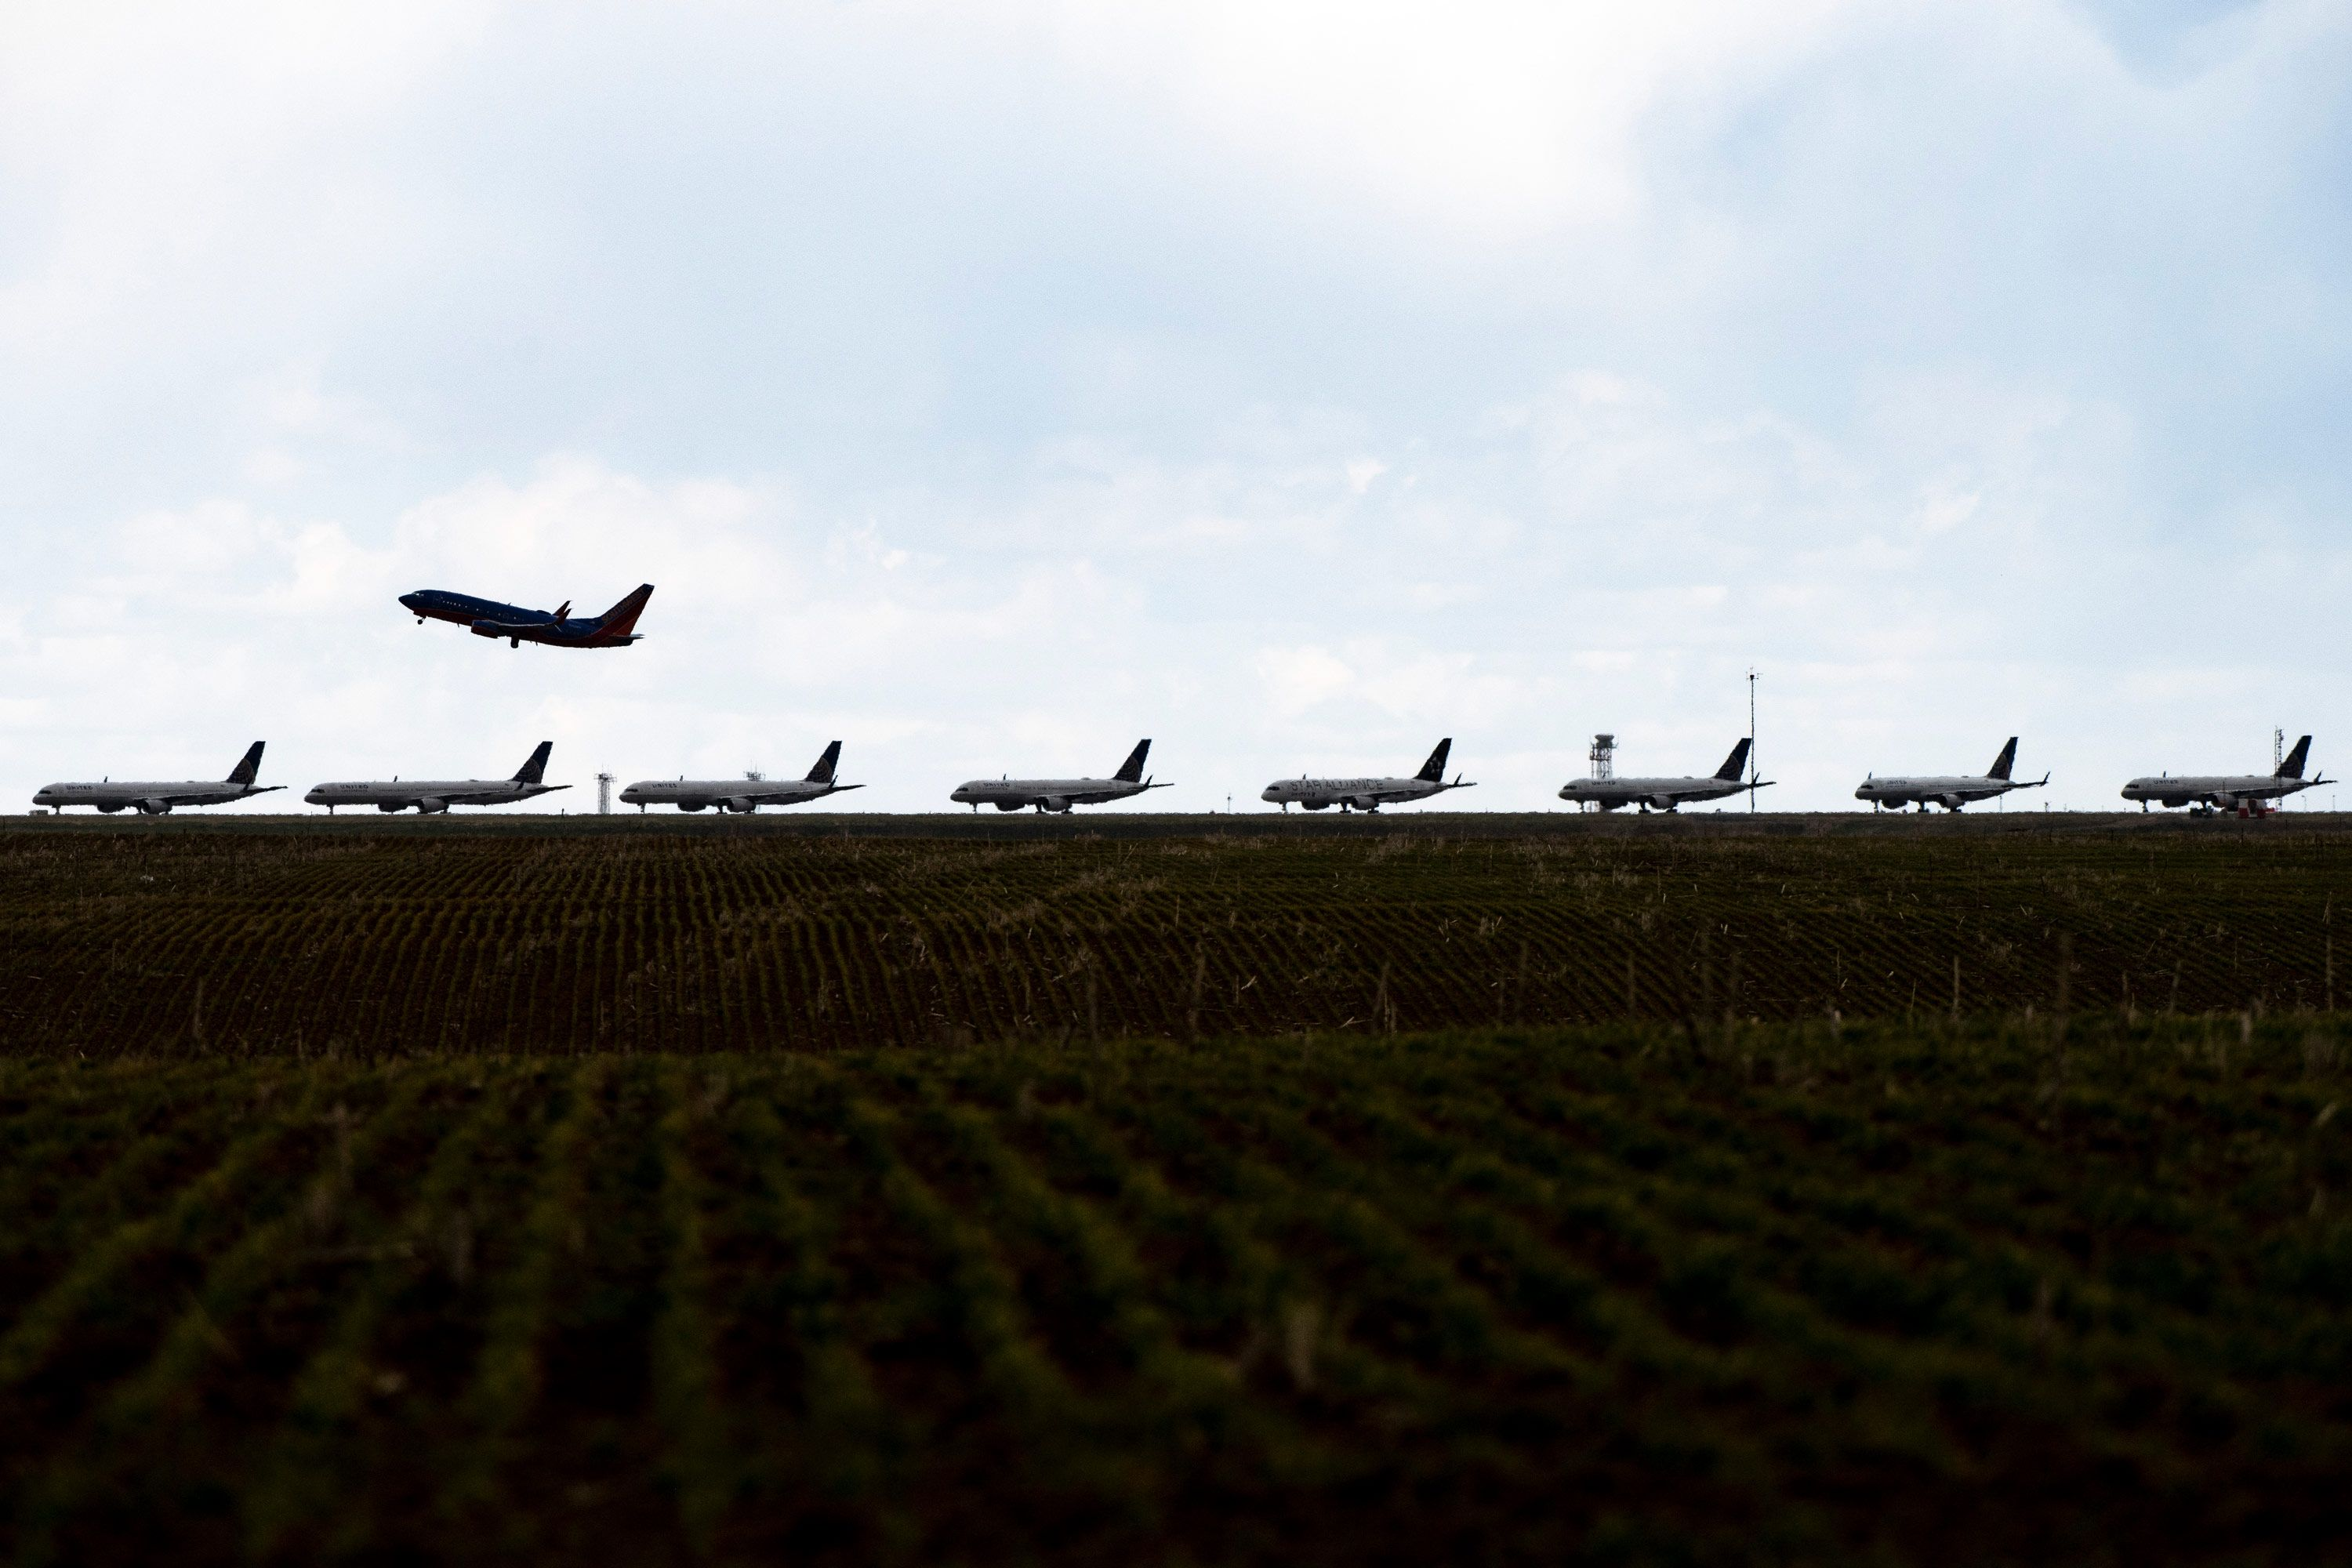 Why Airlines Are Still Flying Those Empty Planes